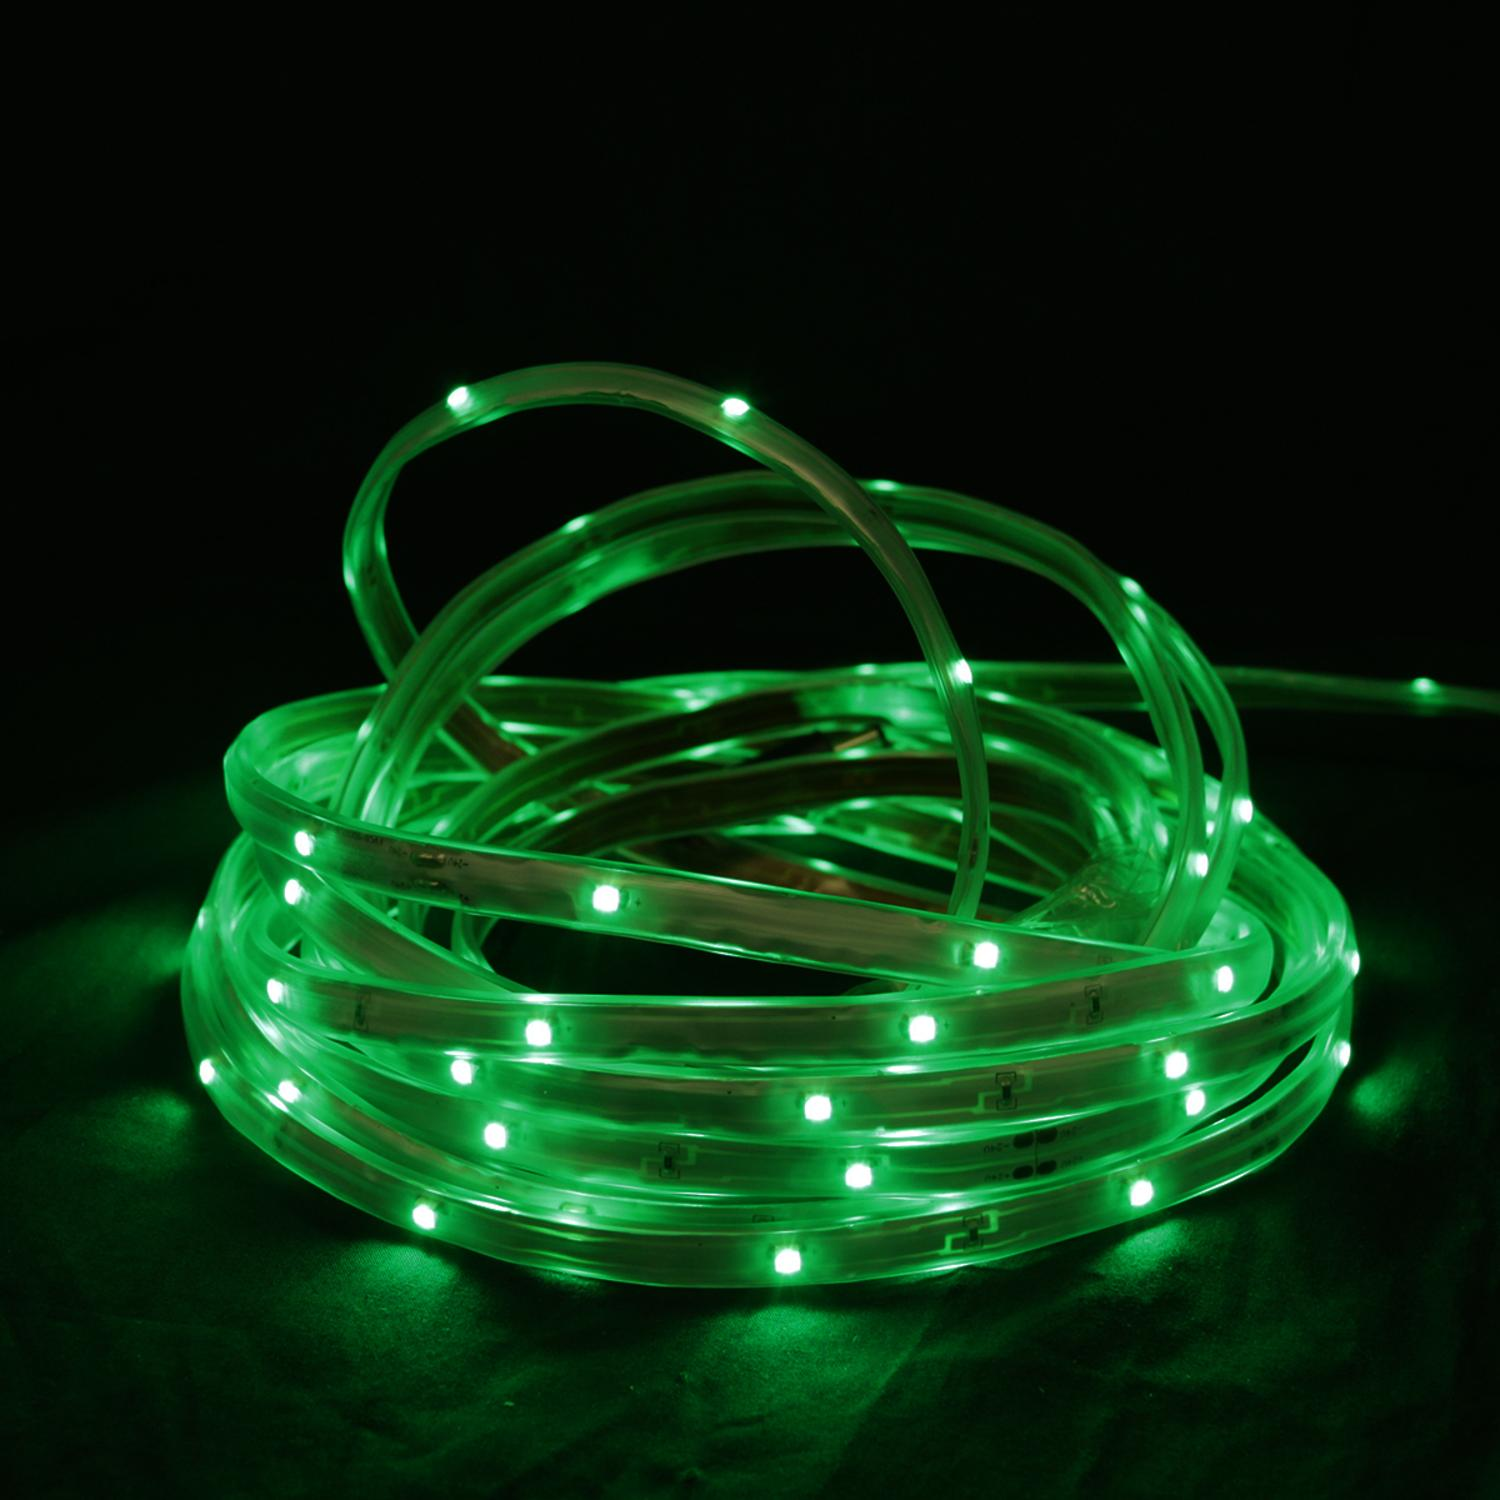 18' Green LED Indoor/Outdoor Christmas Linear Tape Lighting - White Finish